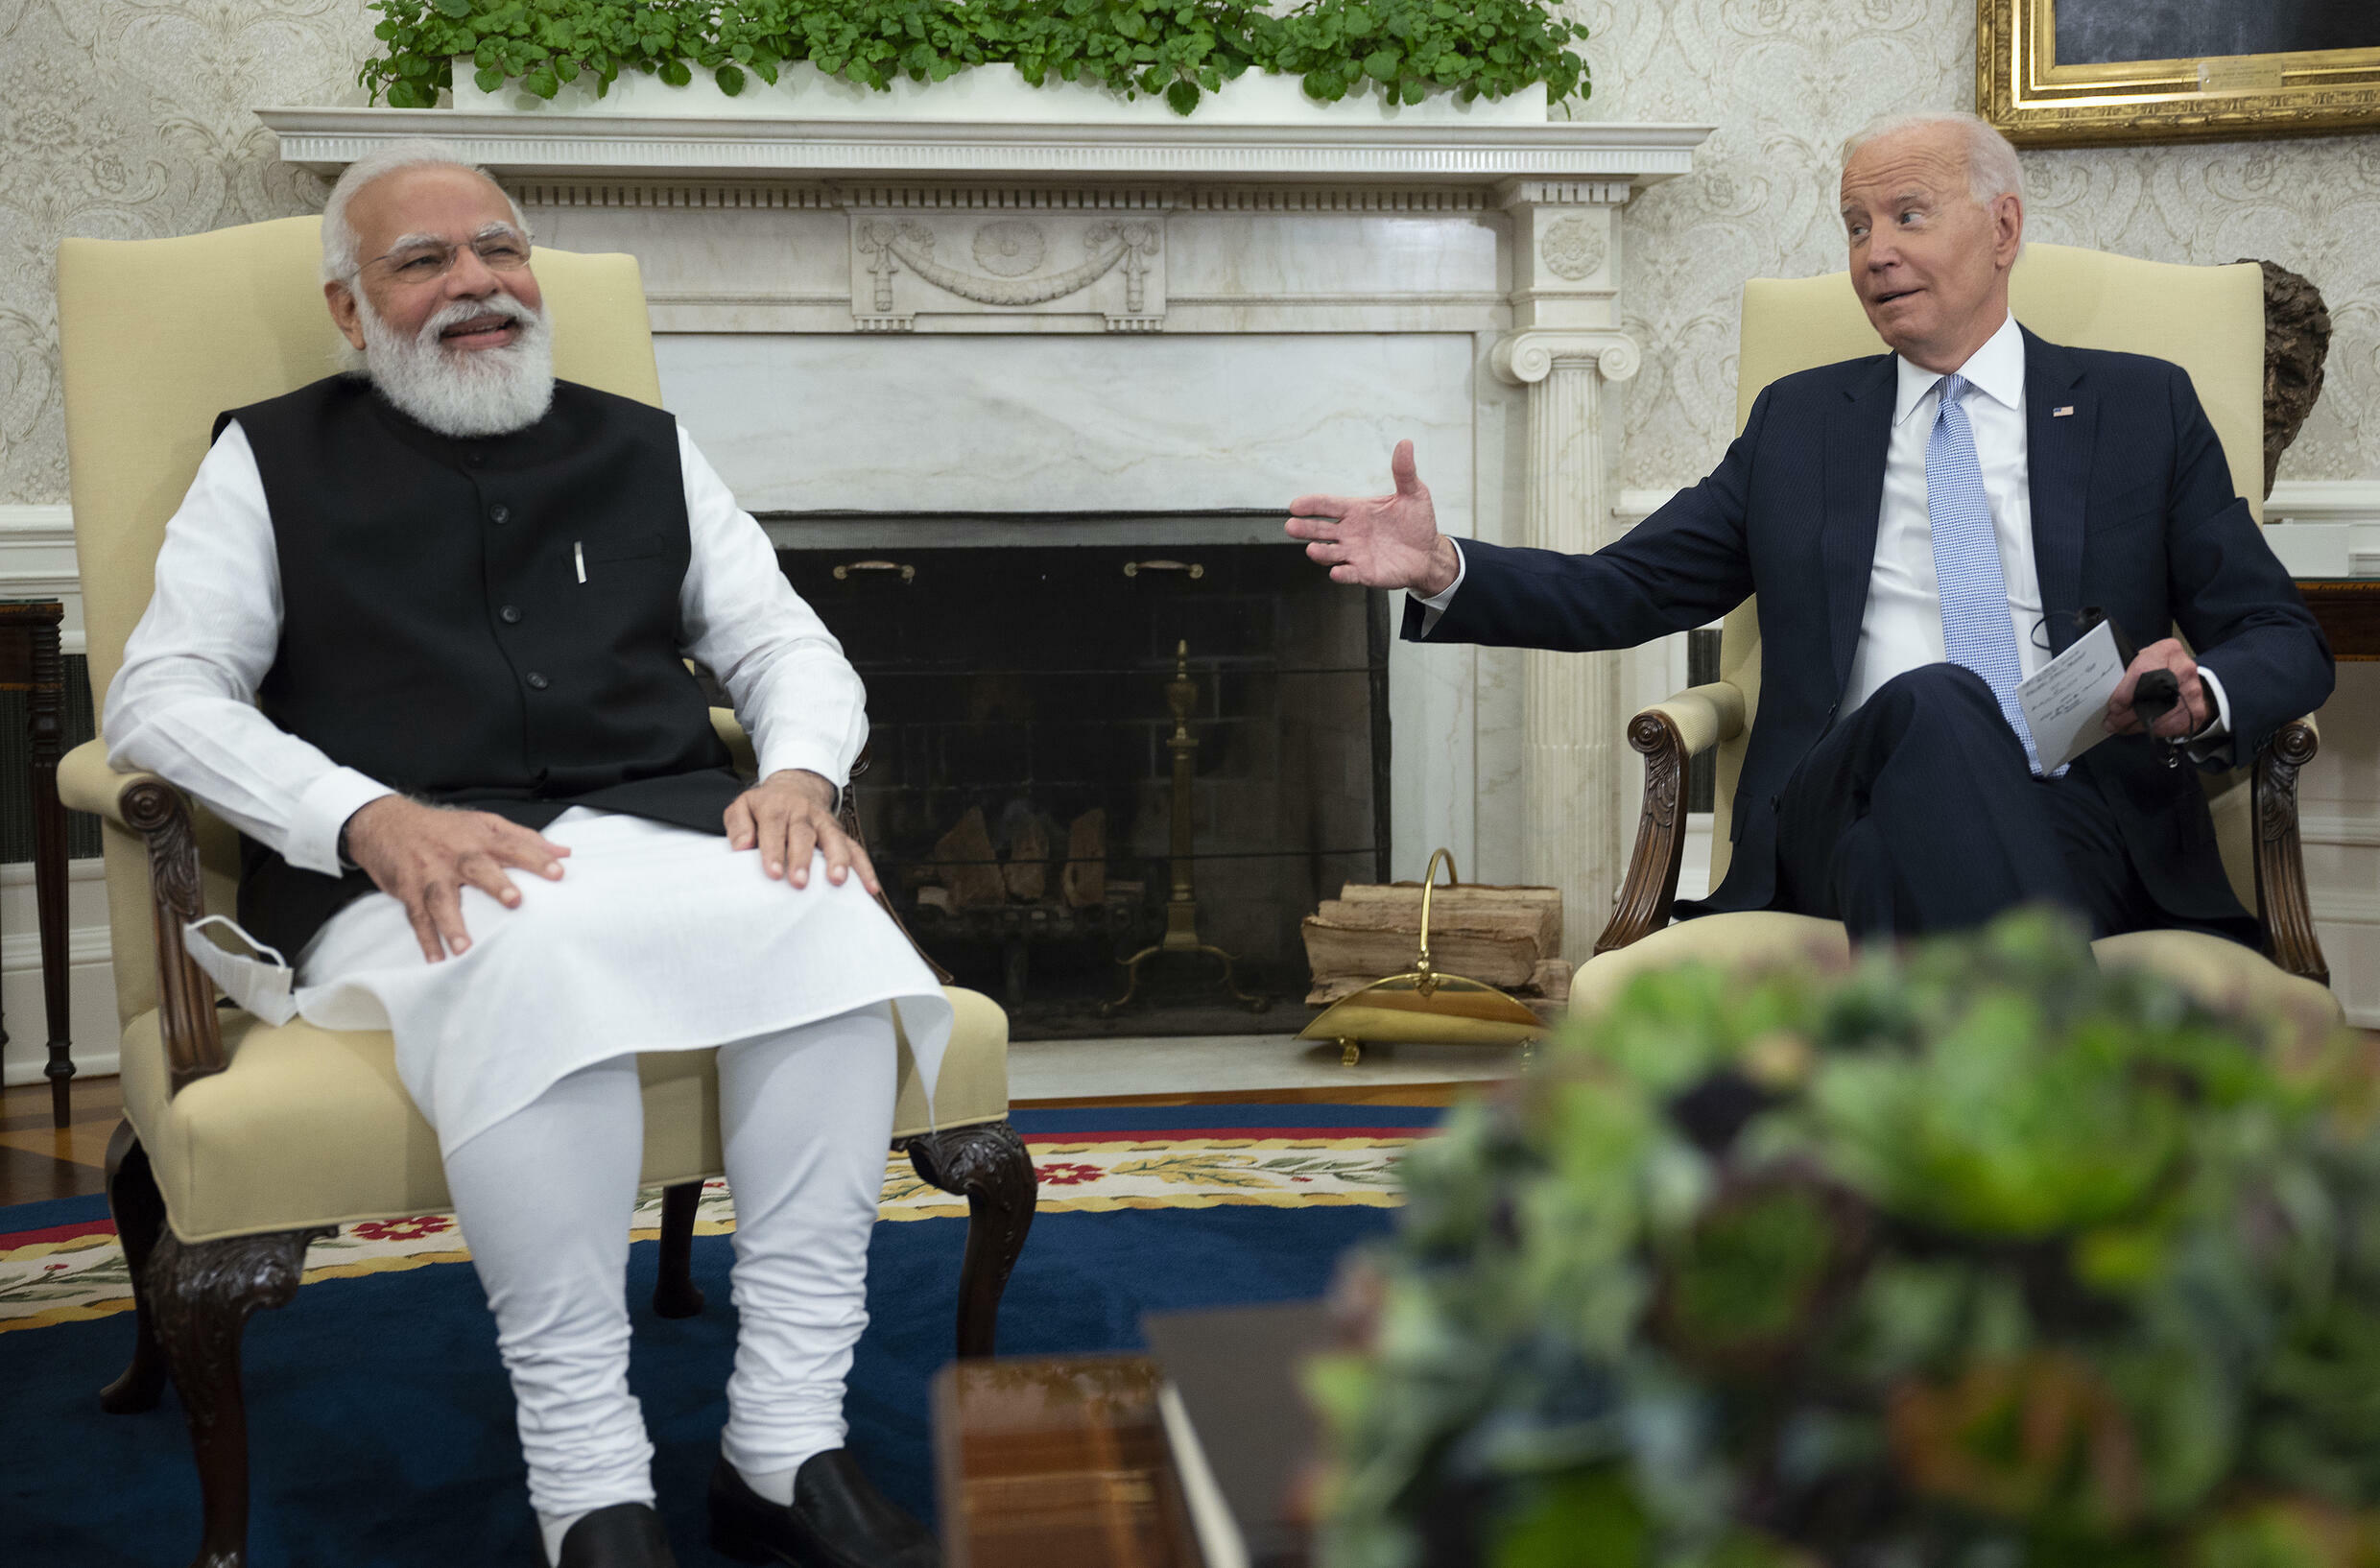 US President Joe Biden meets with Indian Prime Minister Narendra Modi in the Oval Office of the White House